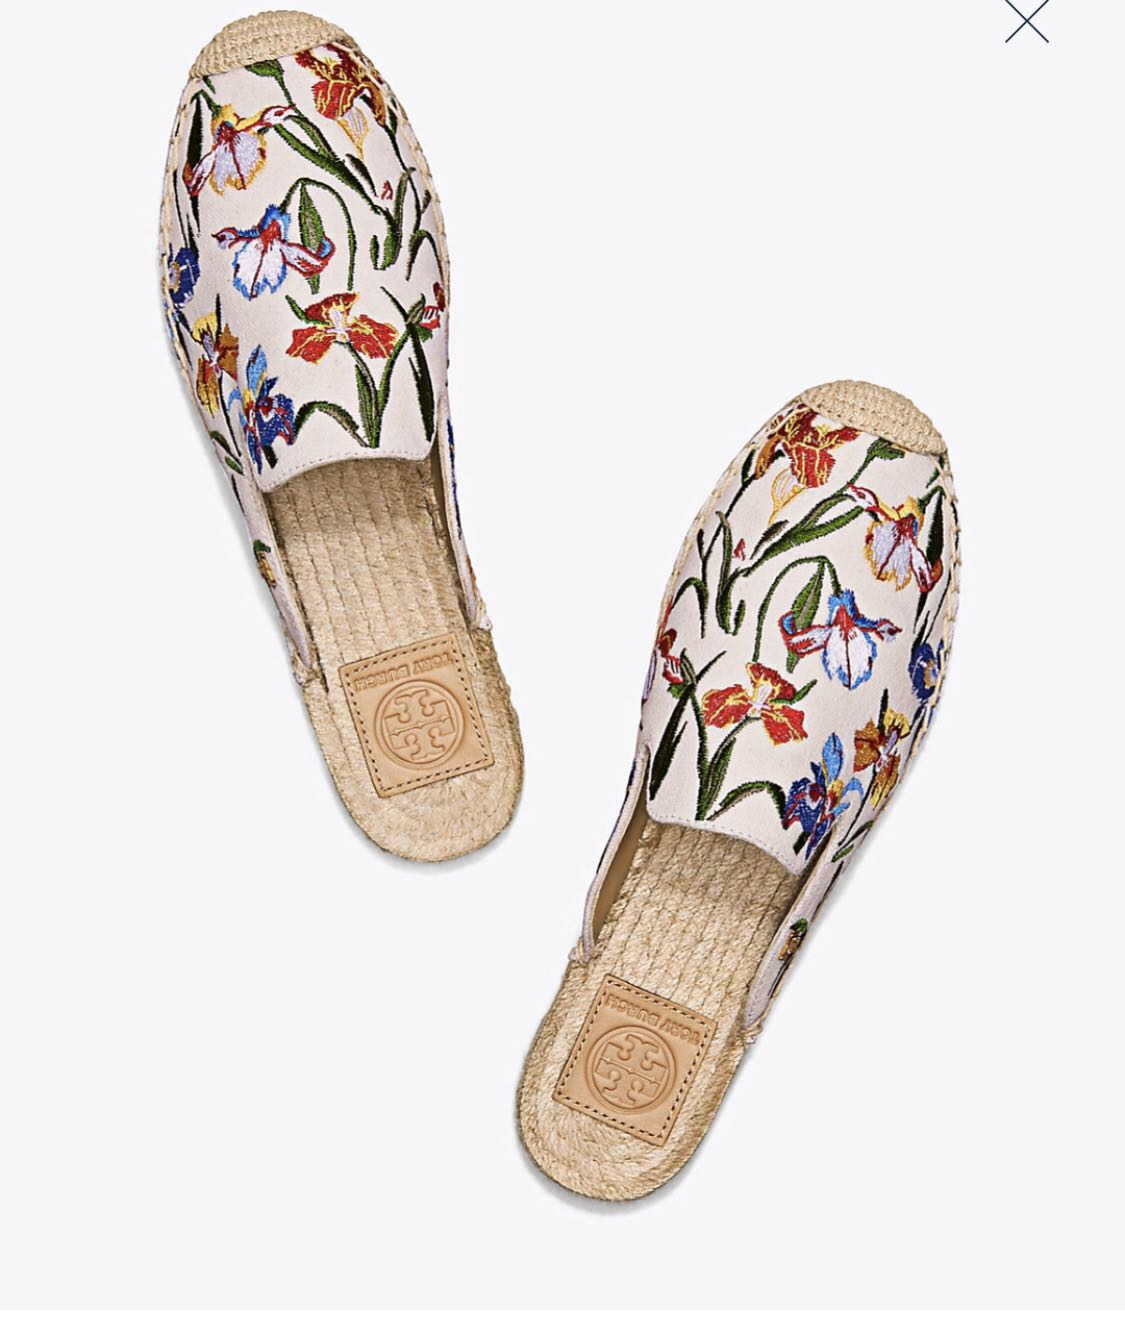 ff91c8516f9b Tory Burch Max Embroidered Espadrilles Slides. Size5